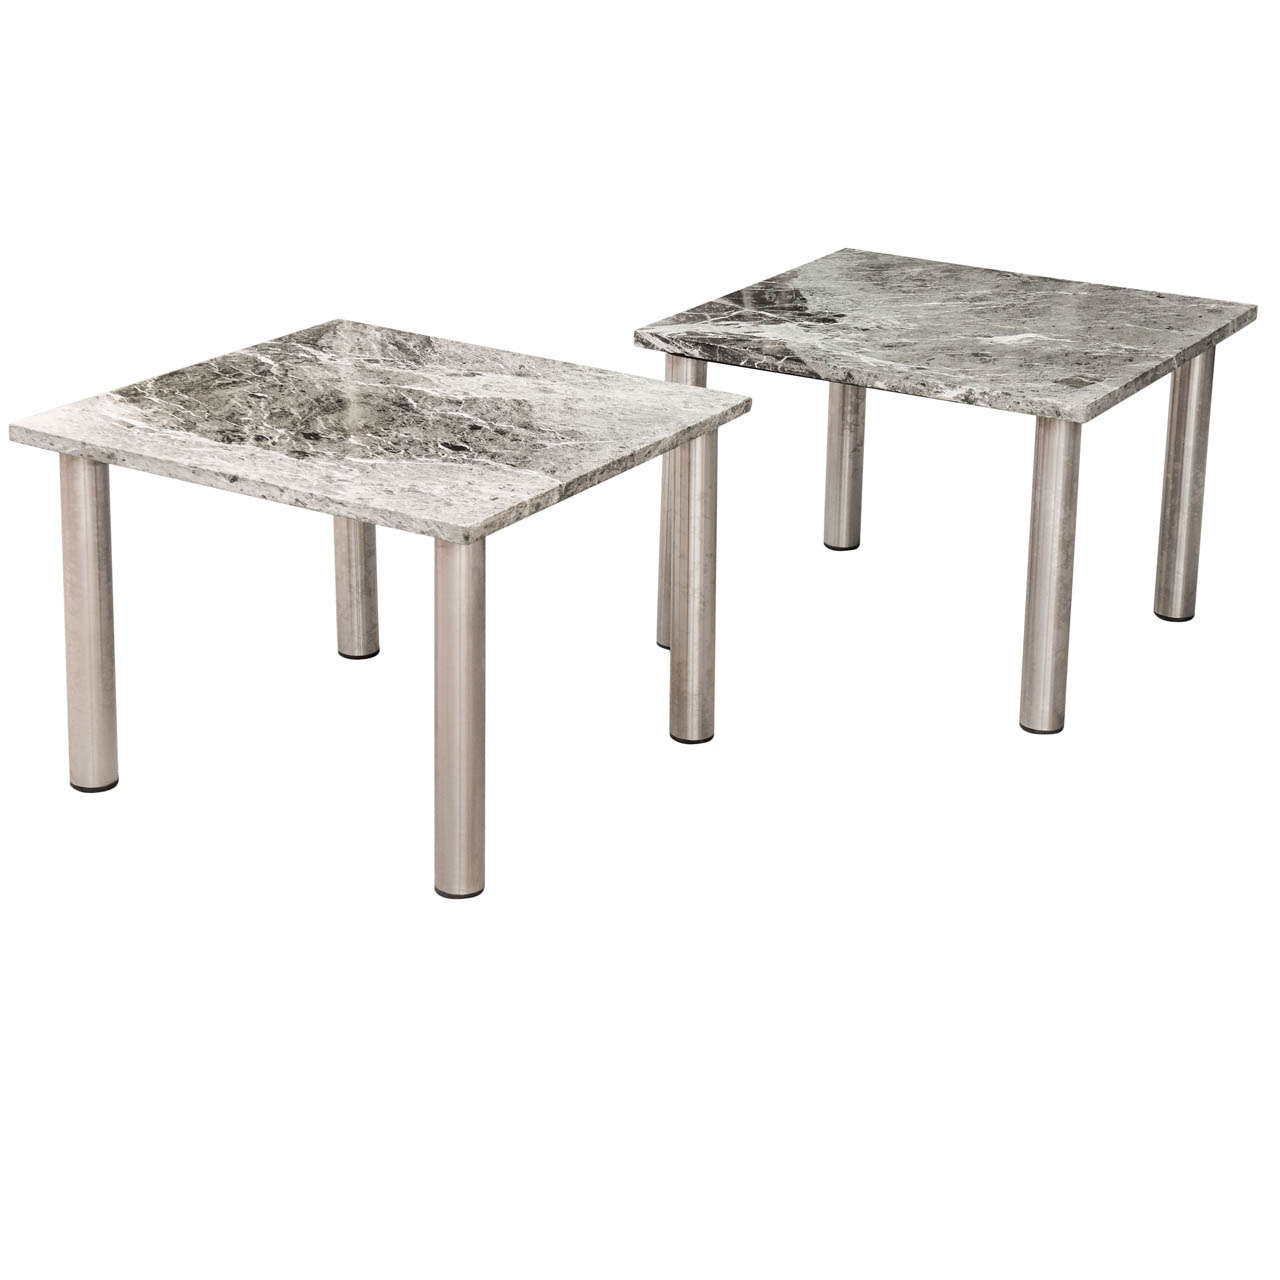 Pair of Vintage 1970s Stainless Steel and Marble Topped Coffee Tables